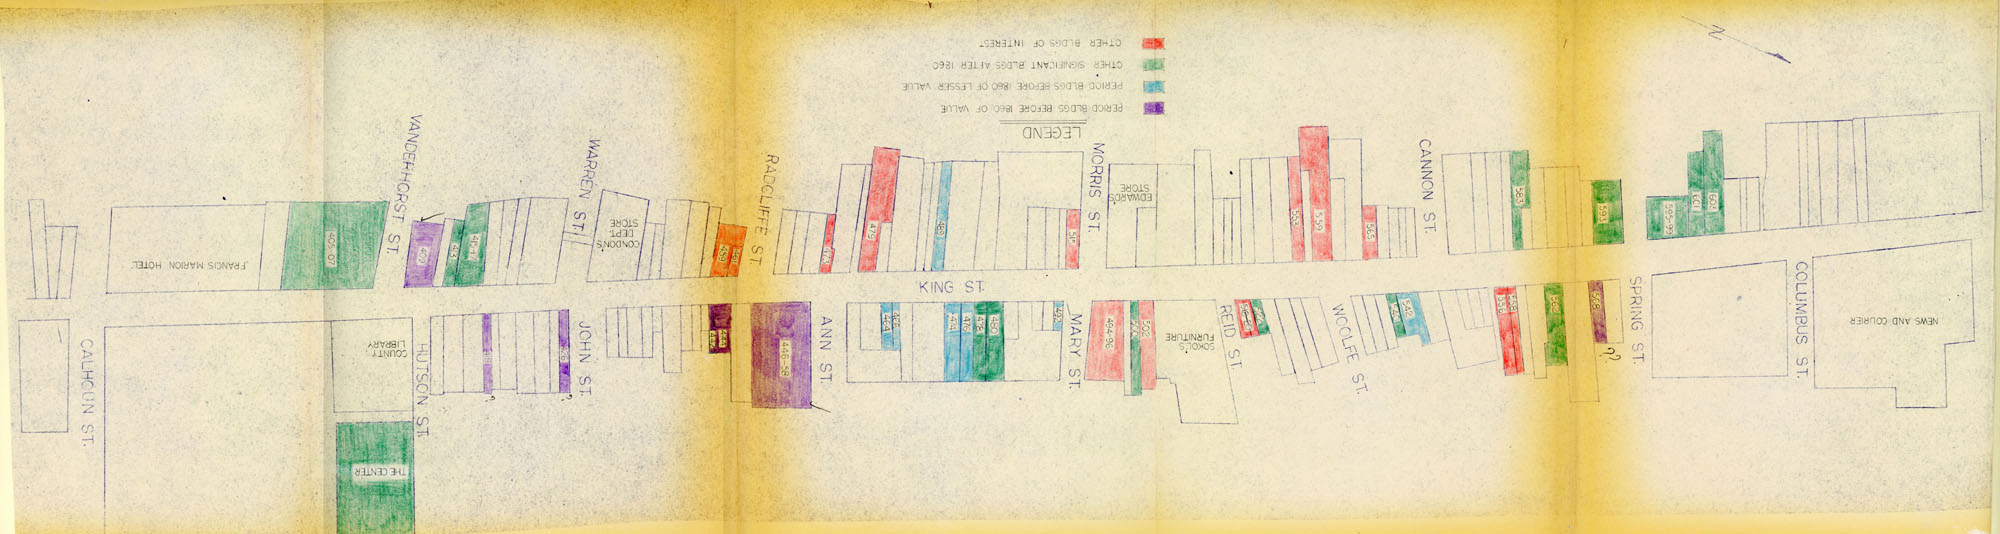 King Street Survey Map 2: King Street from Calhoun to Columbus - Historical Significance